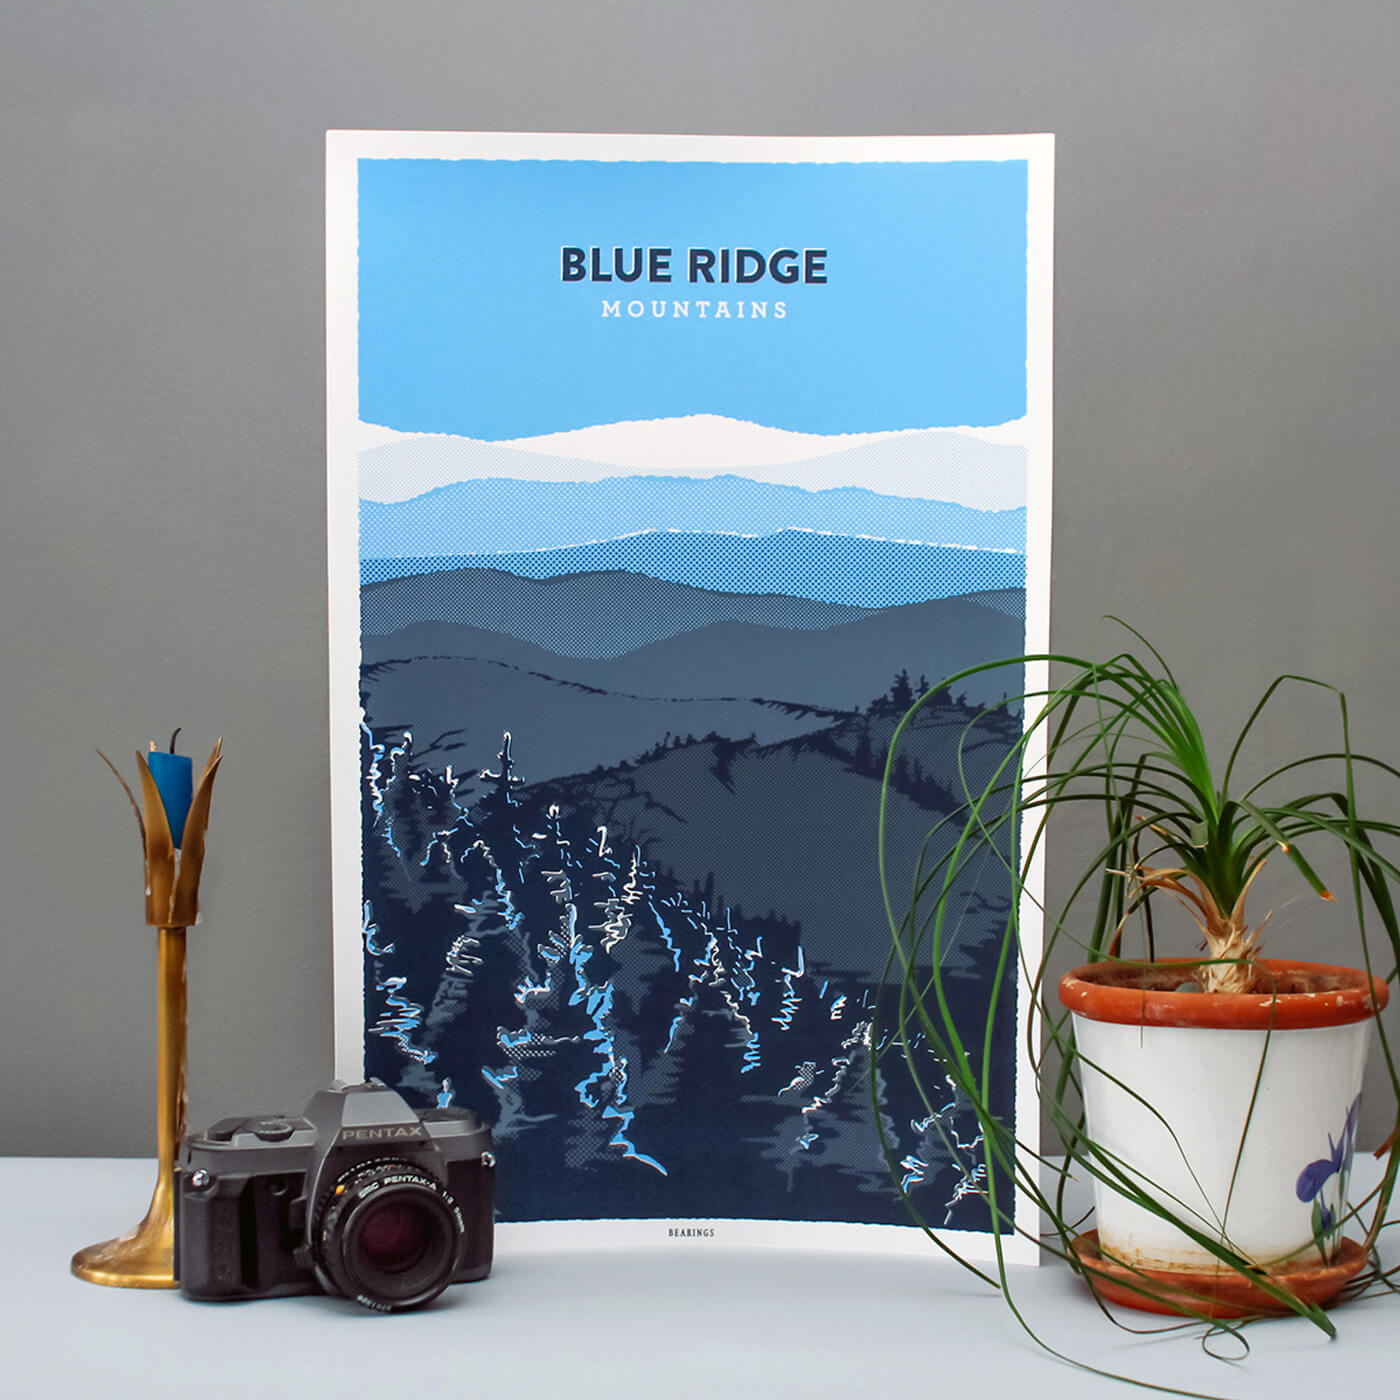 Blue Ridge Mountains Poster Print - A screen-printed poster illustrated to capture the rolling, gentle waves of the Blue Ridge Mountains.IllustrationView Project →